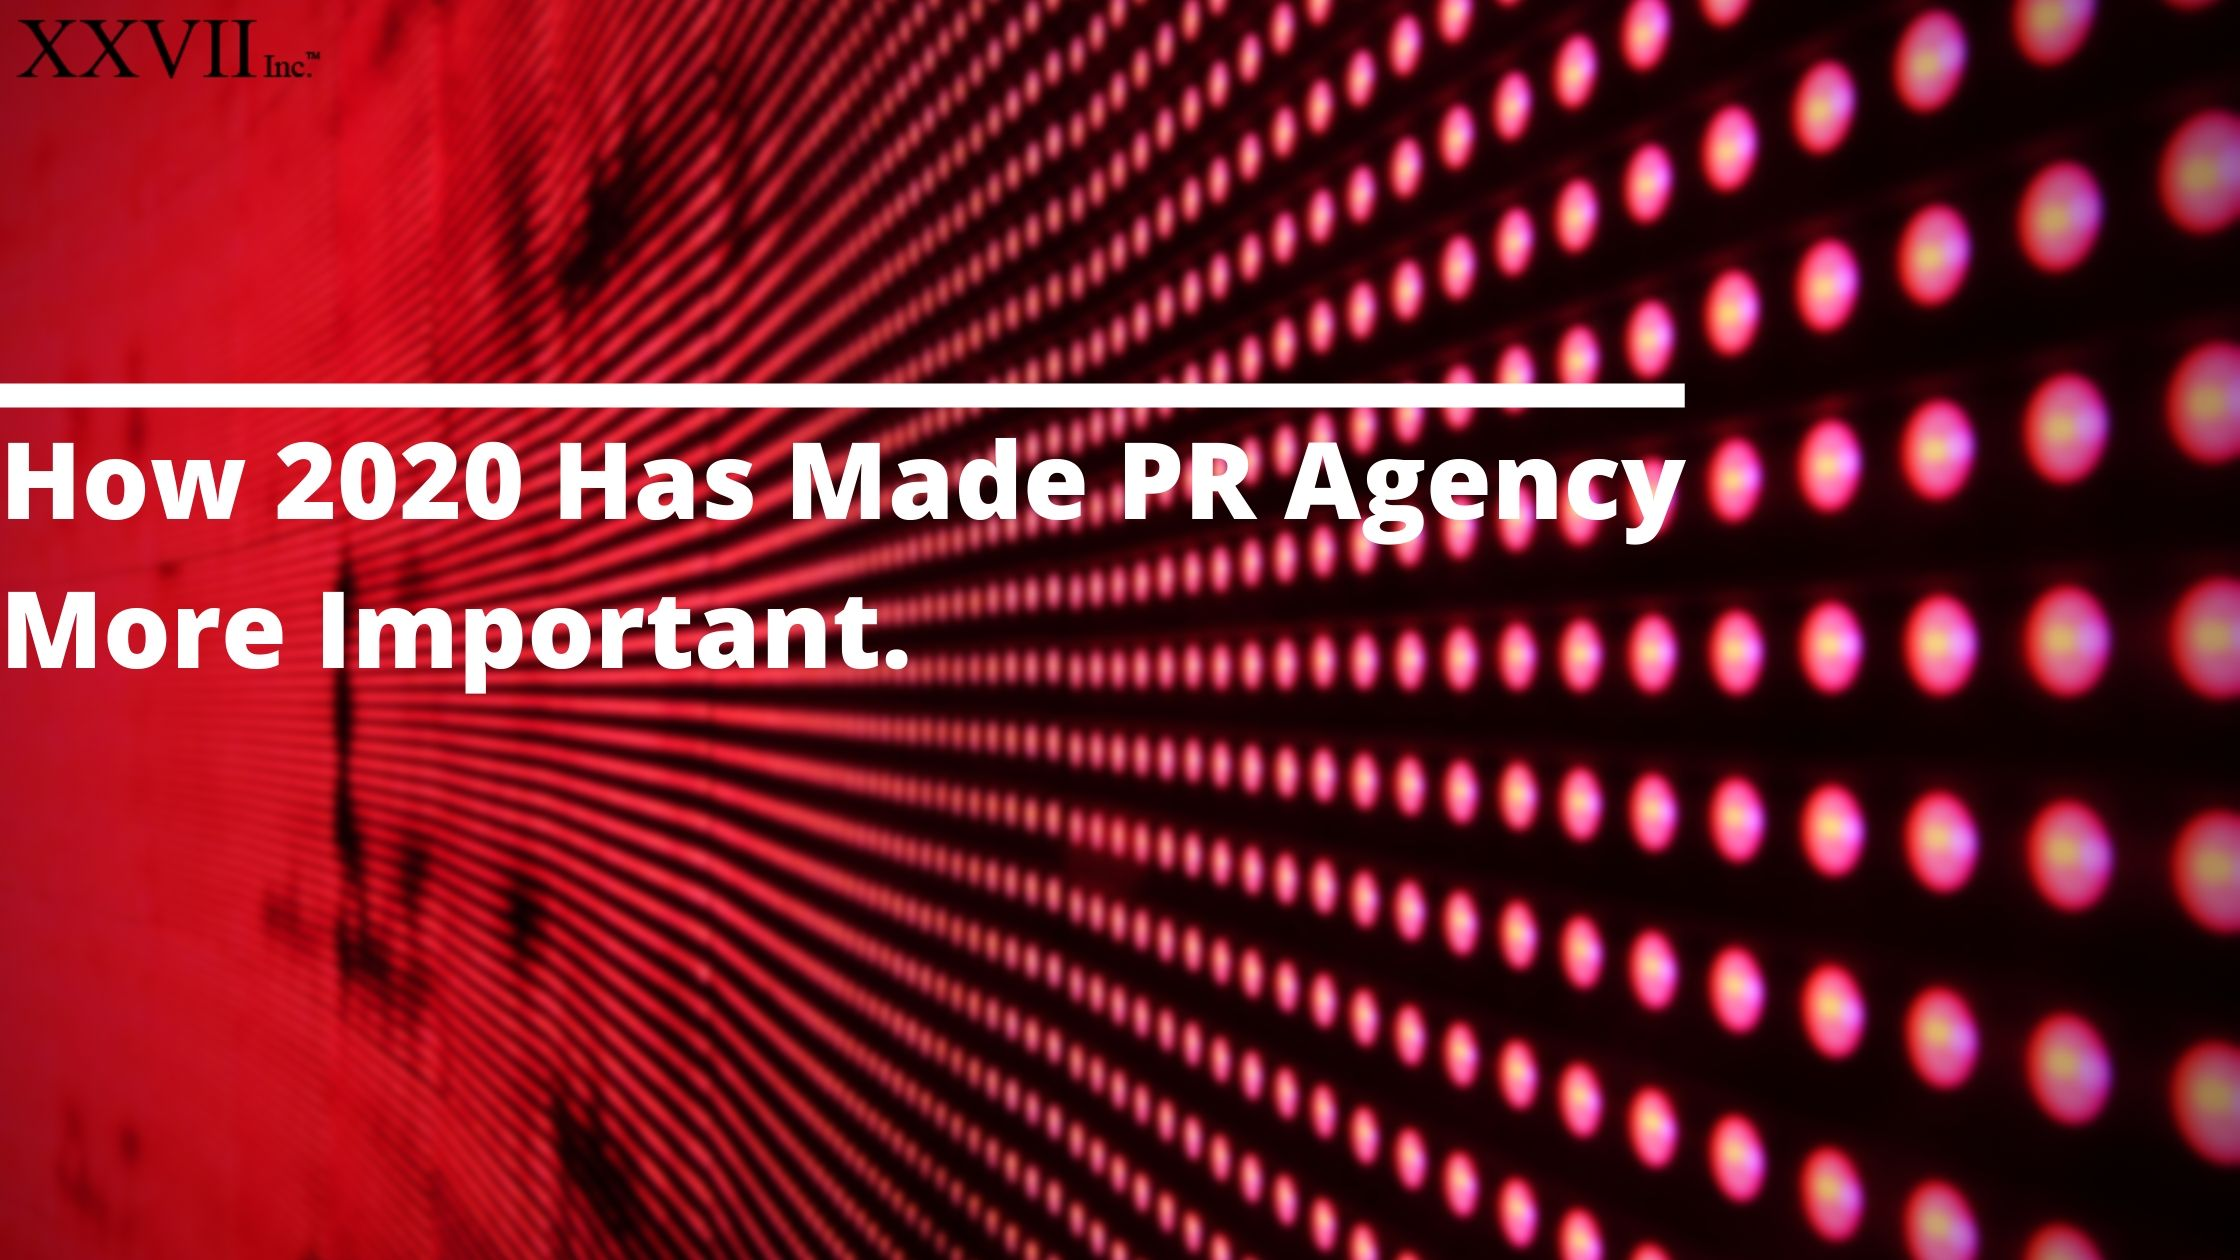 How 2020 Has Made PR Agency More Important.